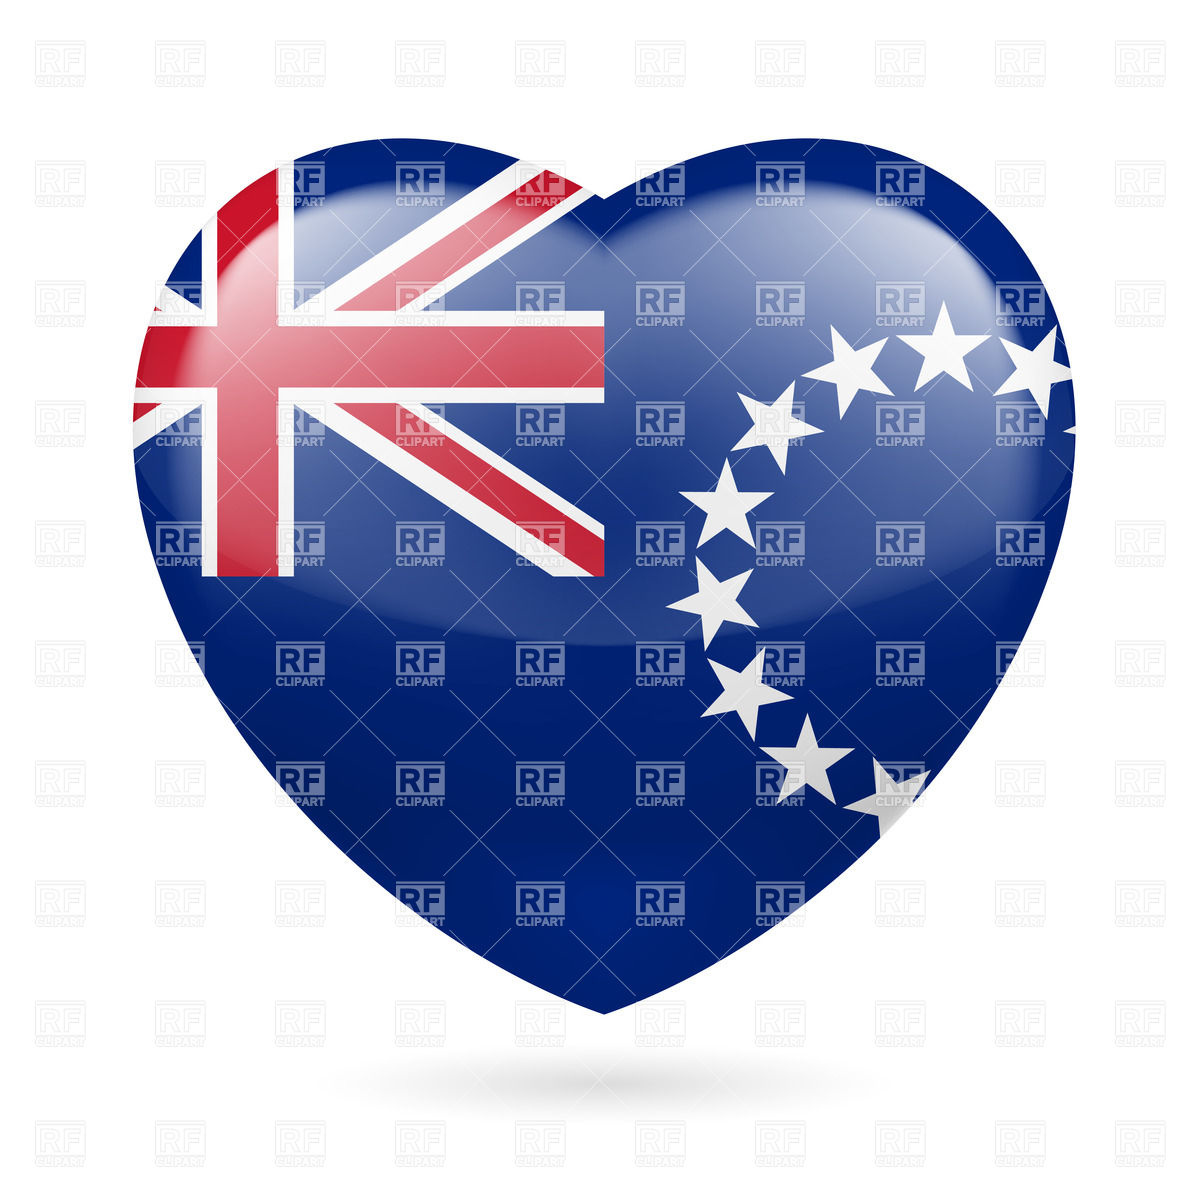 I love Cook Islands. Heart with flag design Vector Image #32267.